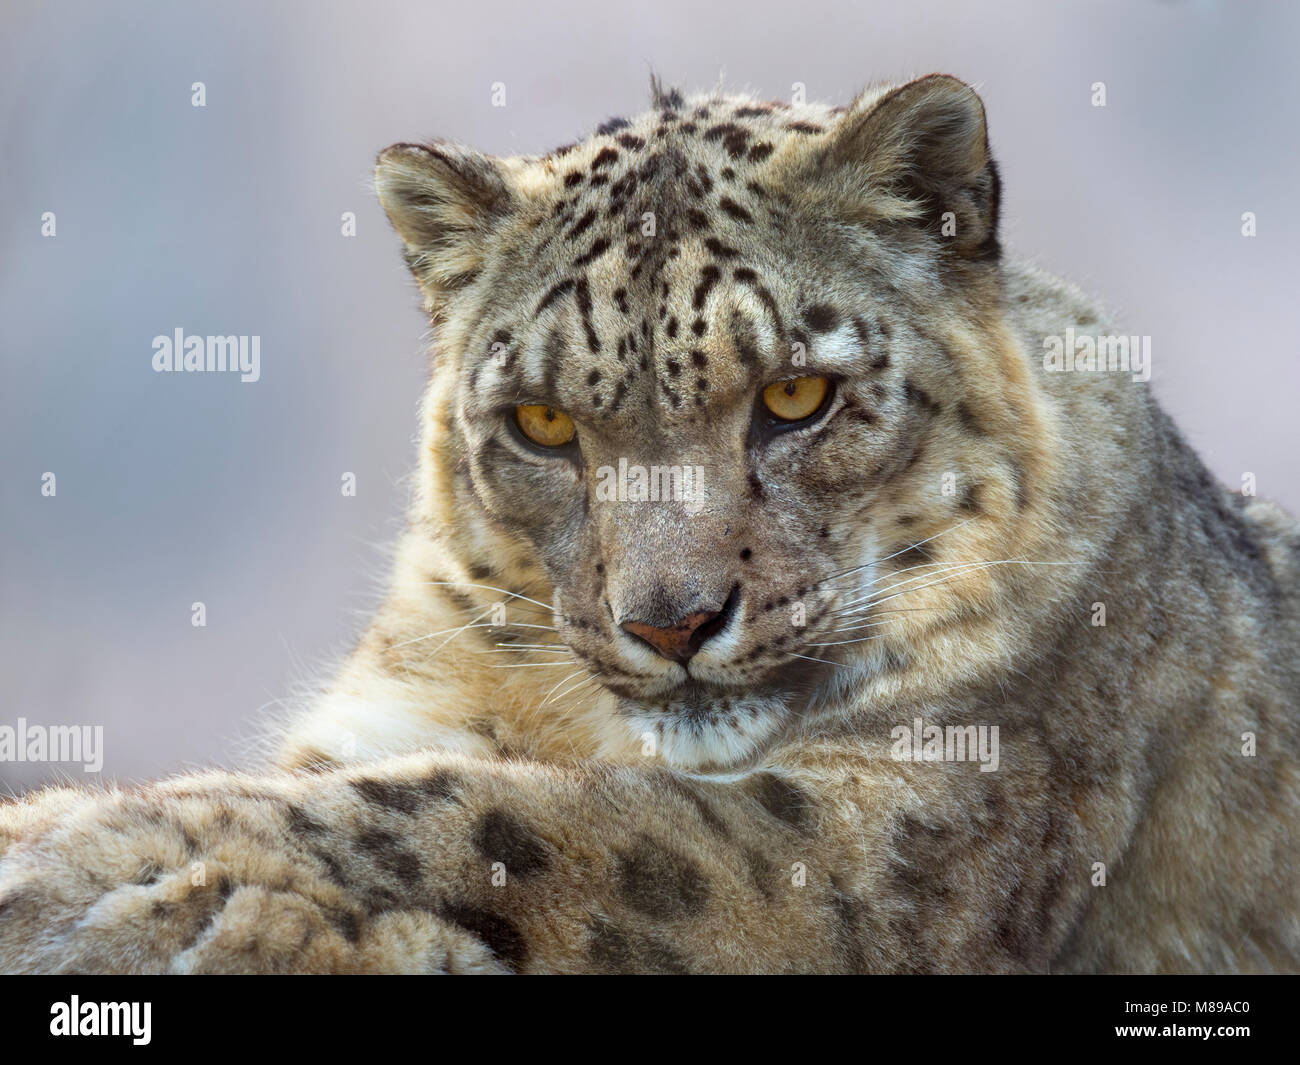 Snow leopard or ounce Panthera uncia - Stock Image